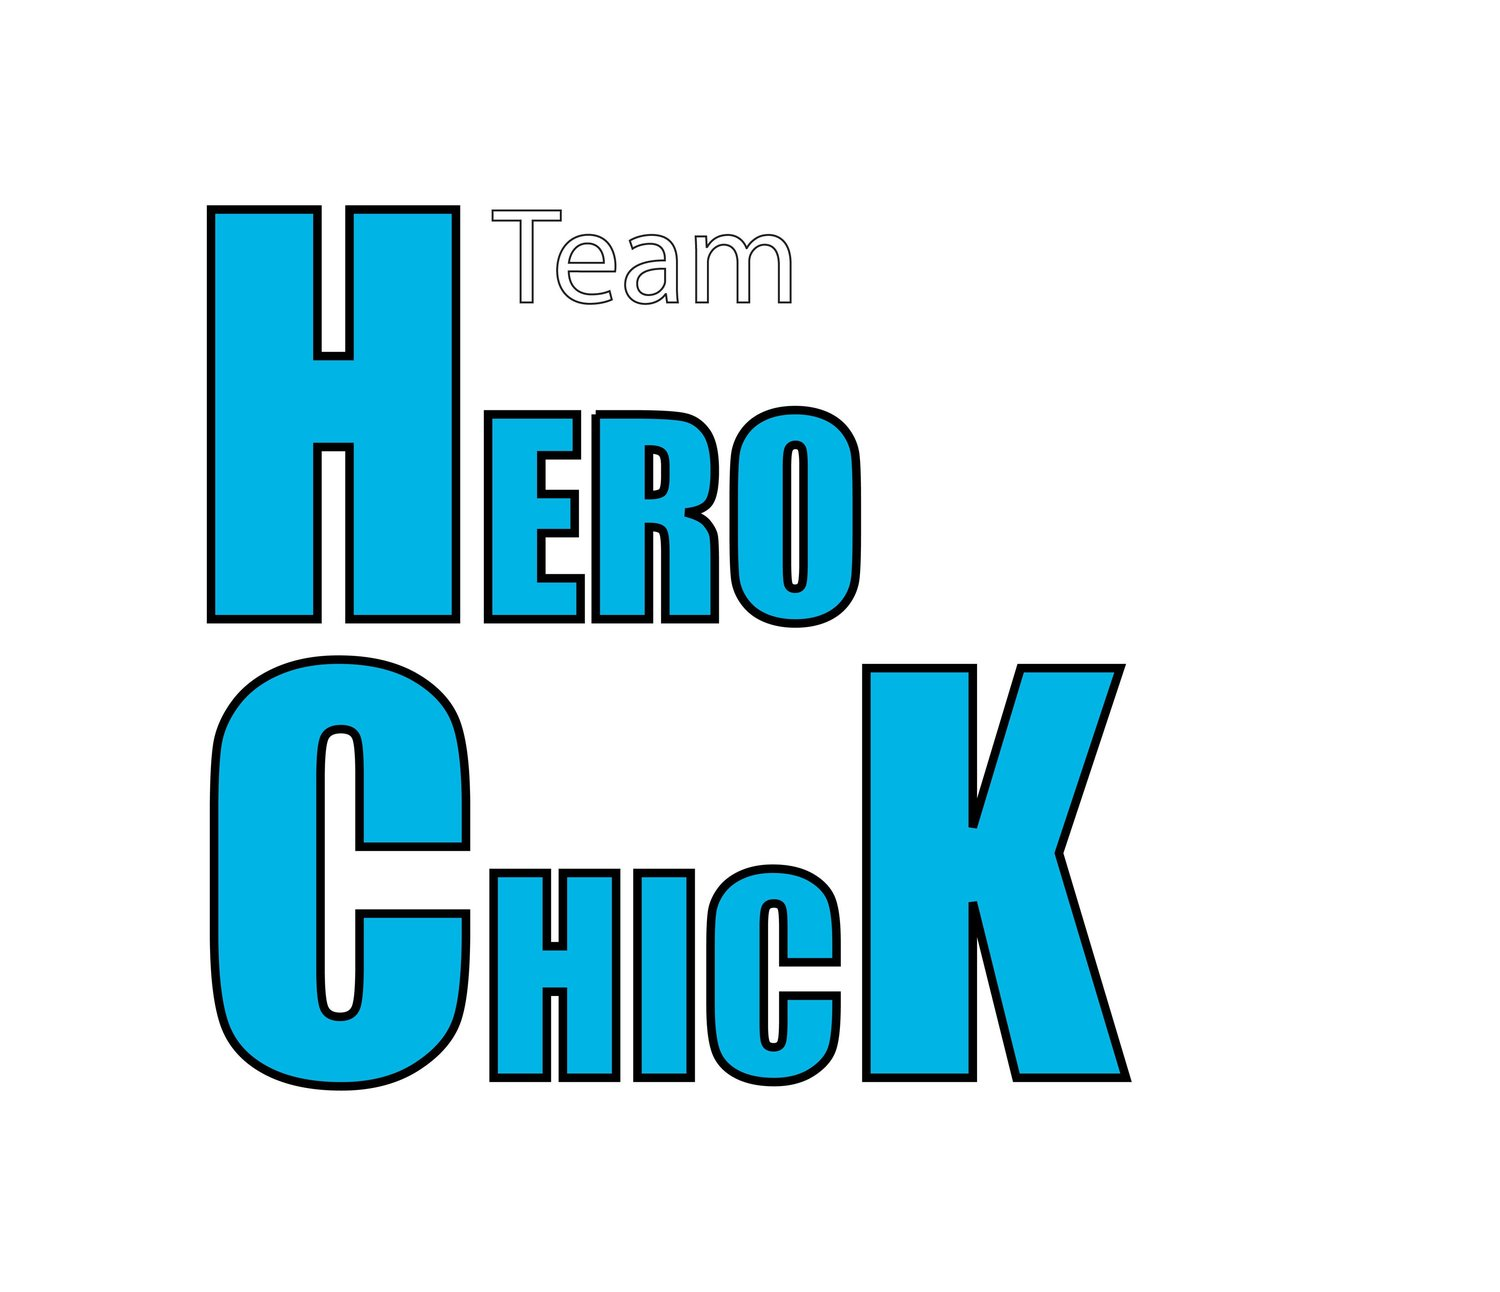 TEAM HERO CHICK